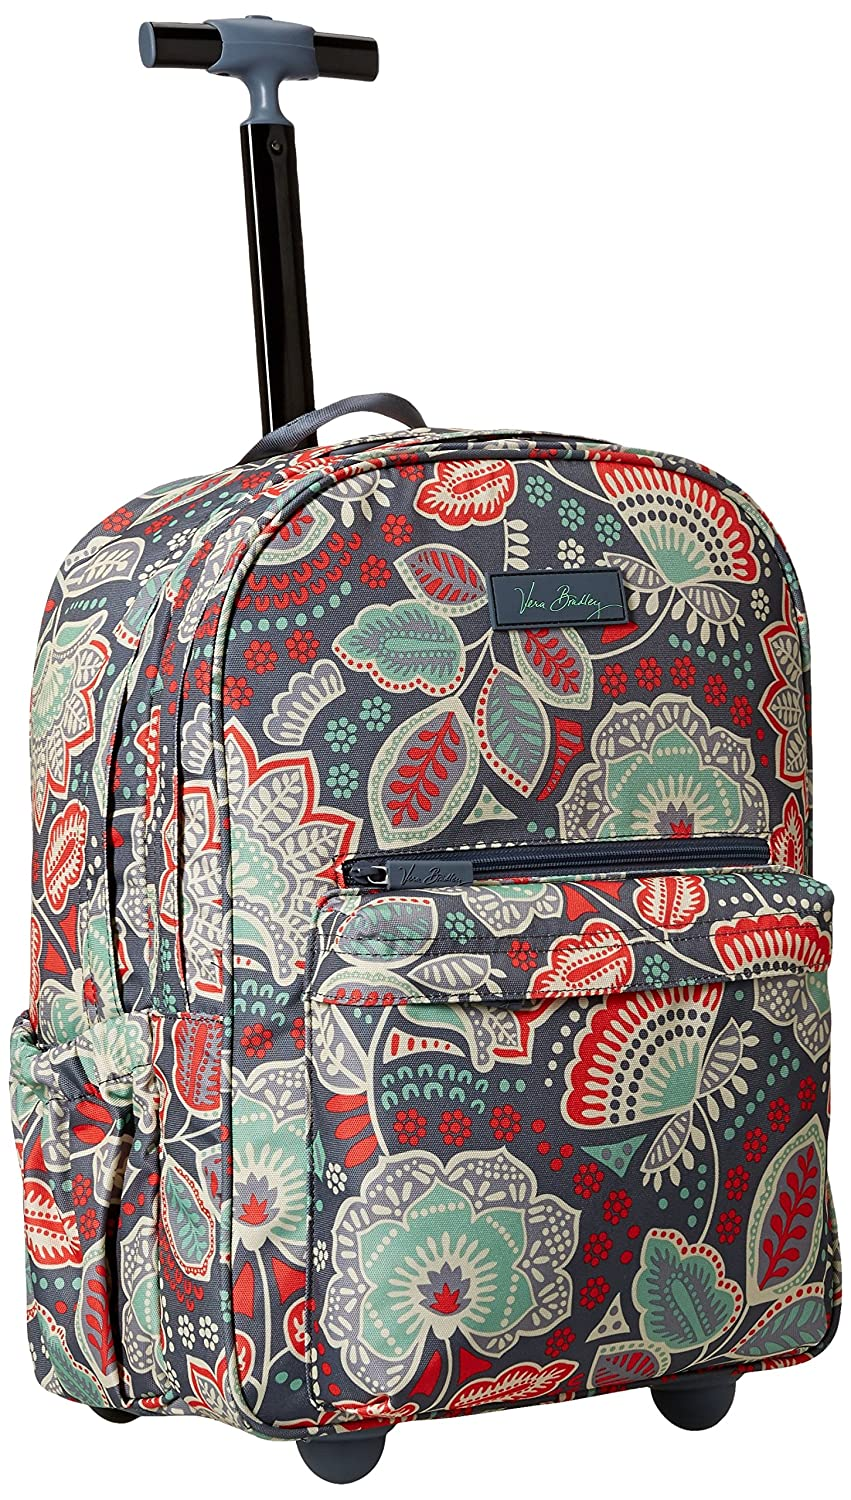 Amazon.com  Vera Bradley Women s Lighten Up Rolling Backpack ... 89488d9d989a6